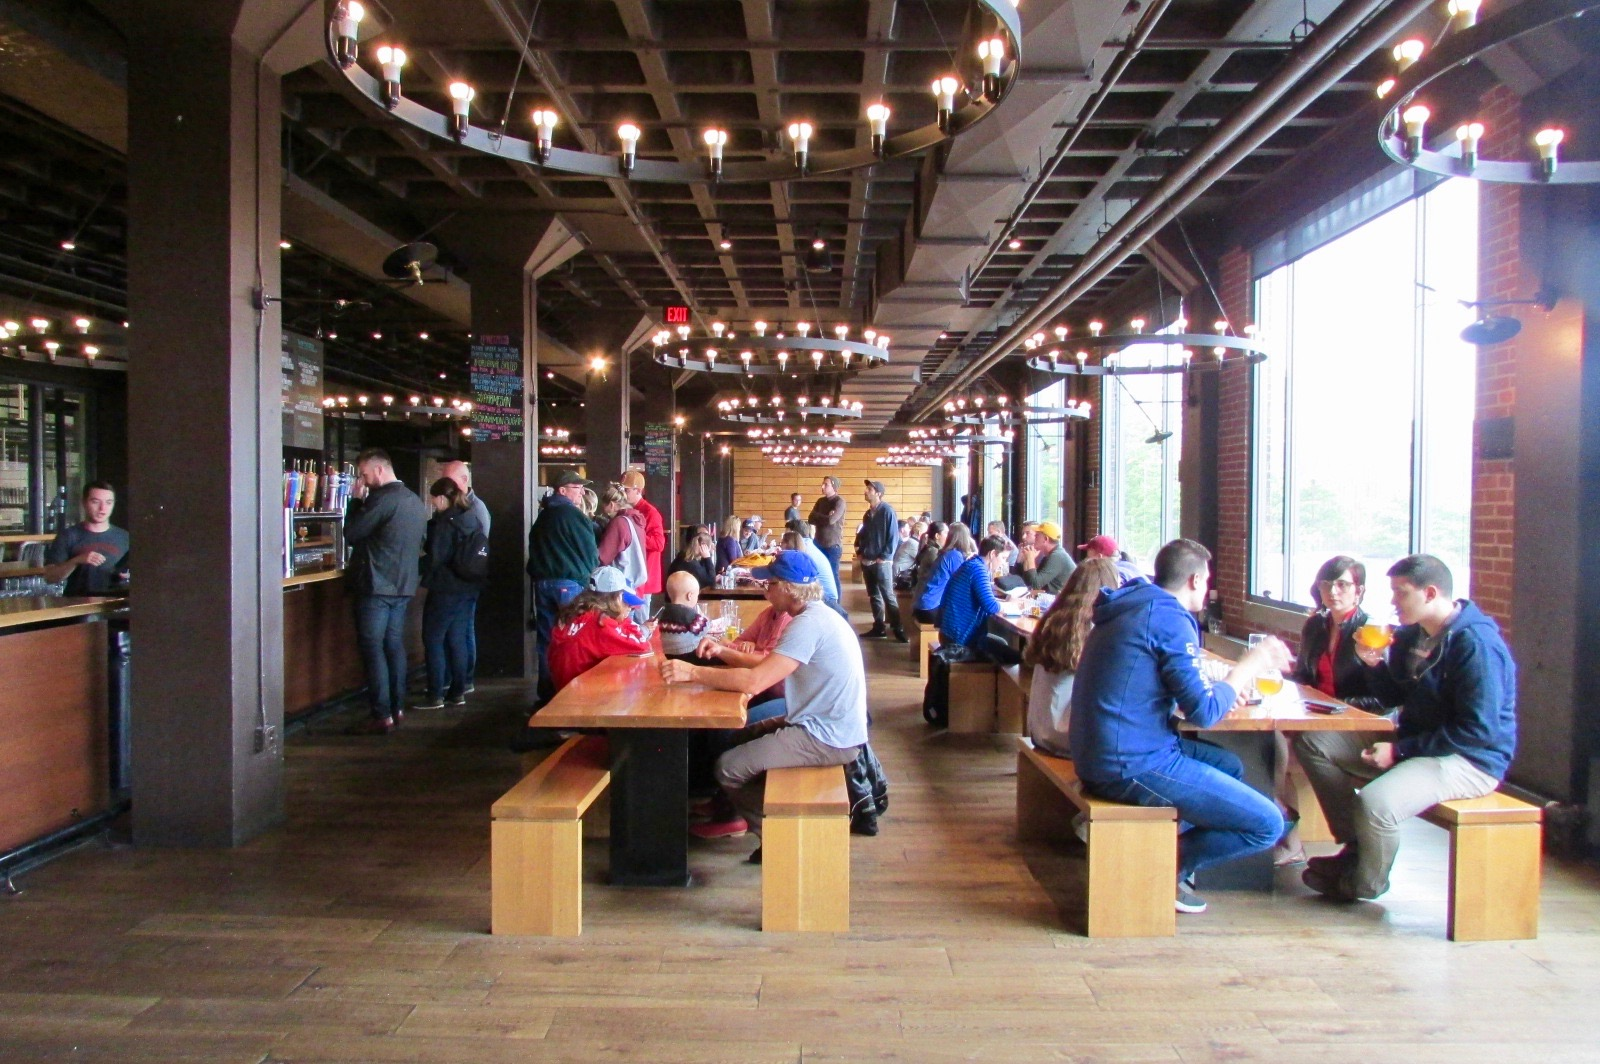 A Monday afternoon at Harpoon (By the way these people are all here to drink beer, may sound obviously, but seriously the only food Harpoon serves are soft pretzels and pretzel chips). The rest of the menu is on tap.